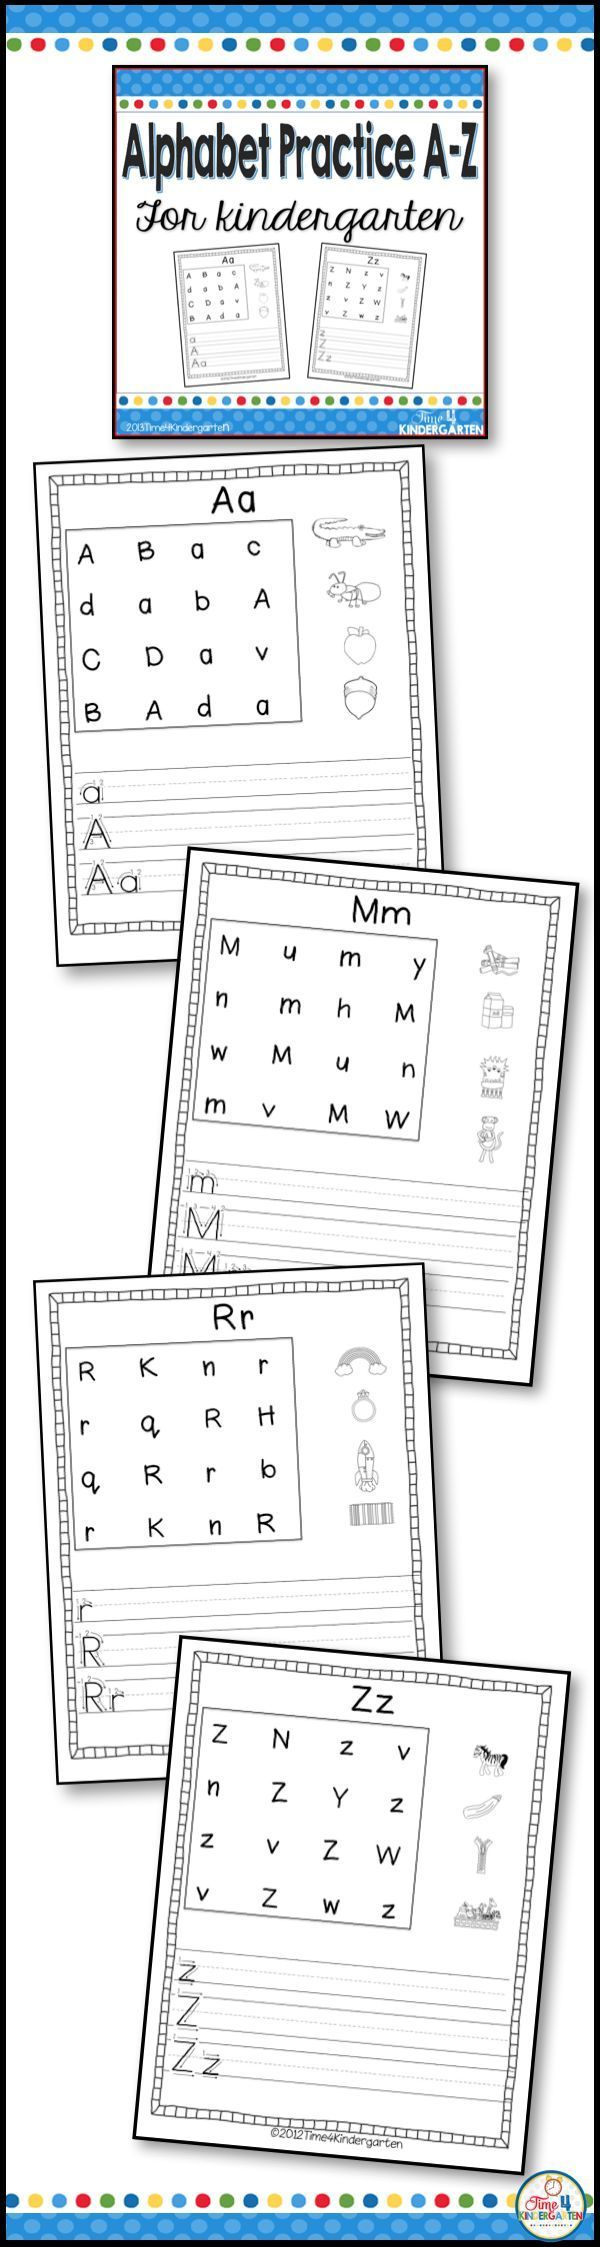 Alphabet practice for kindergarten- letter search letter writing and corresponding pictures for ech letter of the alphabet.